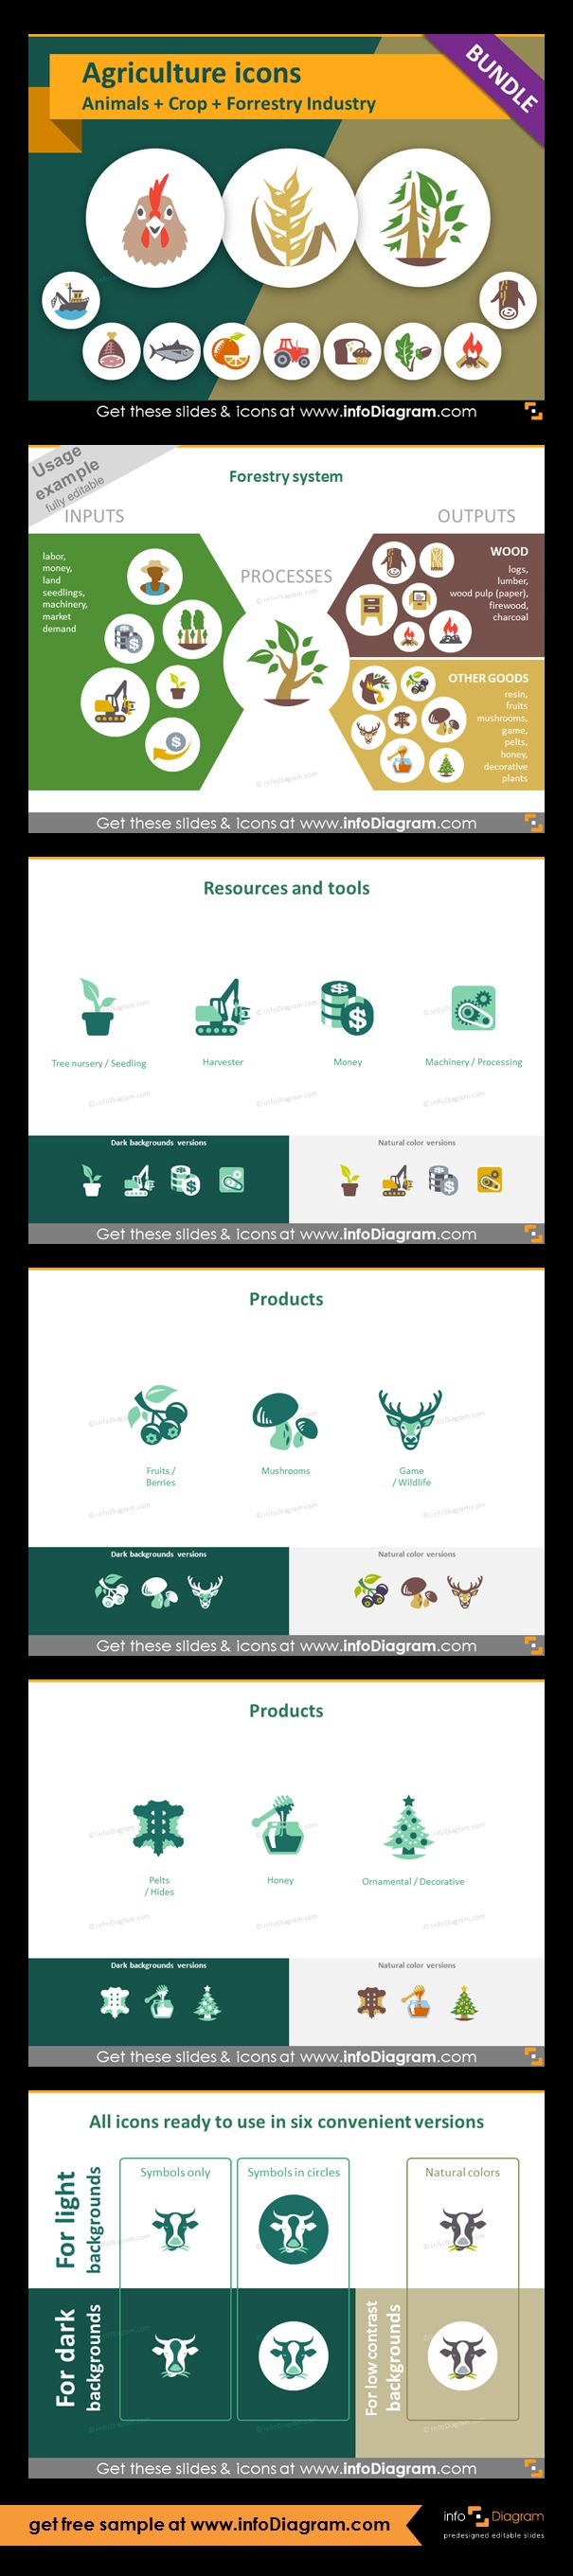 Food and Agriculture icons: Animals, Crop Cultivation, Forestry. All symbols in simple flat style, suitable for Metro UI style graphics. Icons provided in 5 versions. Graphic presenting forestry process with icons of inputs and outputs. Products from forestry and wood industry:  fruits, mushrooms, wildlife, pelts, honey, ornamental. Example of six symbol versions. Use Forestry and wood industry icons for presentation or infographics related to this agricultural sector.